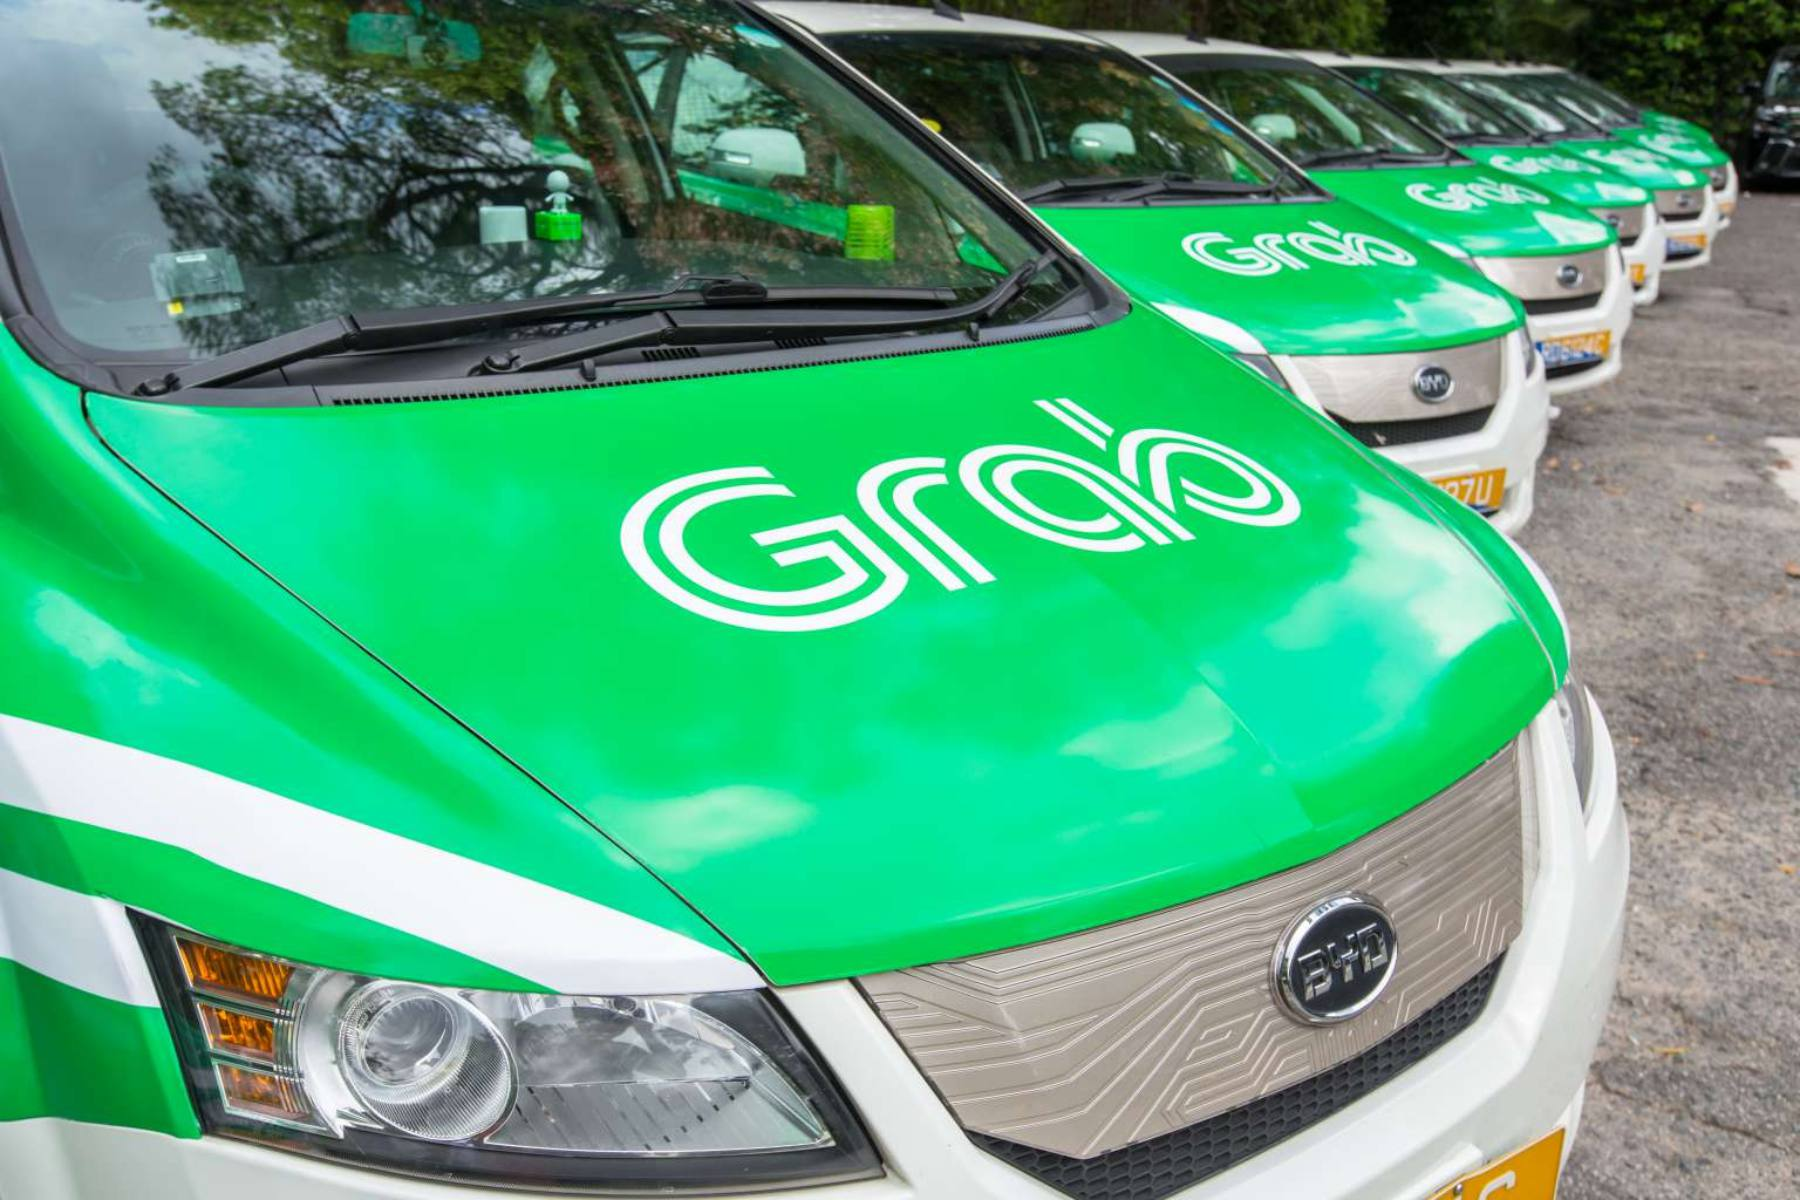 Grab Teams Up With Mediacorp